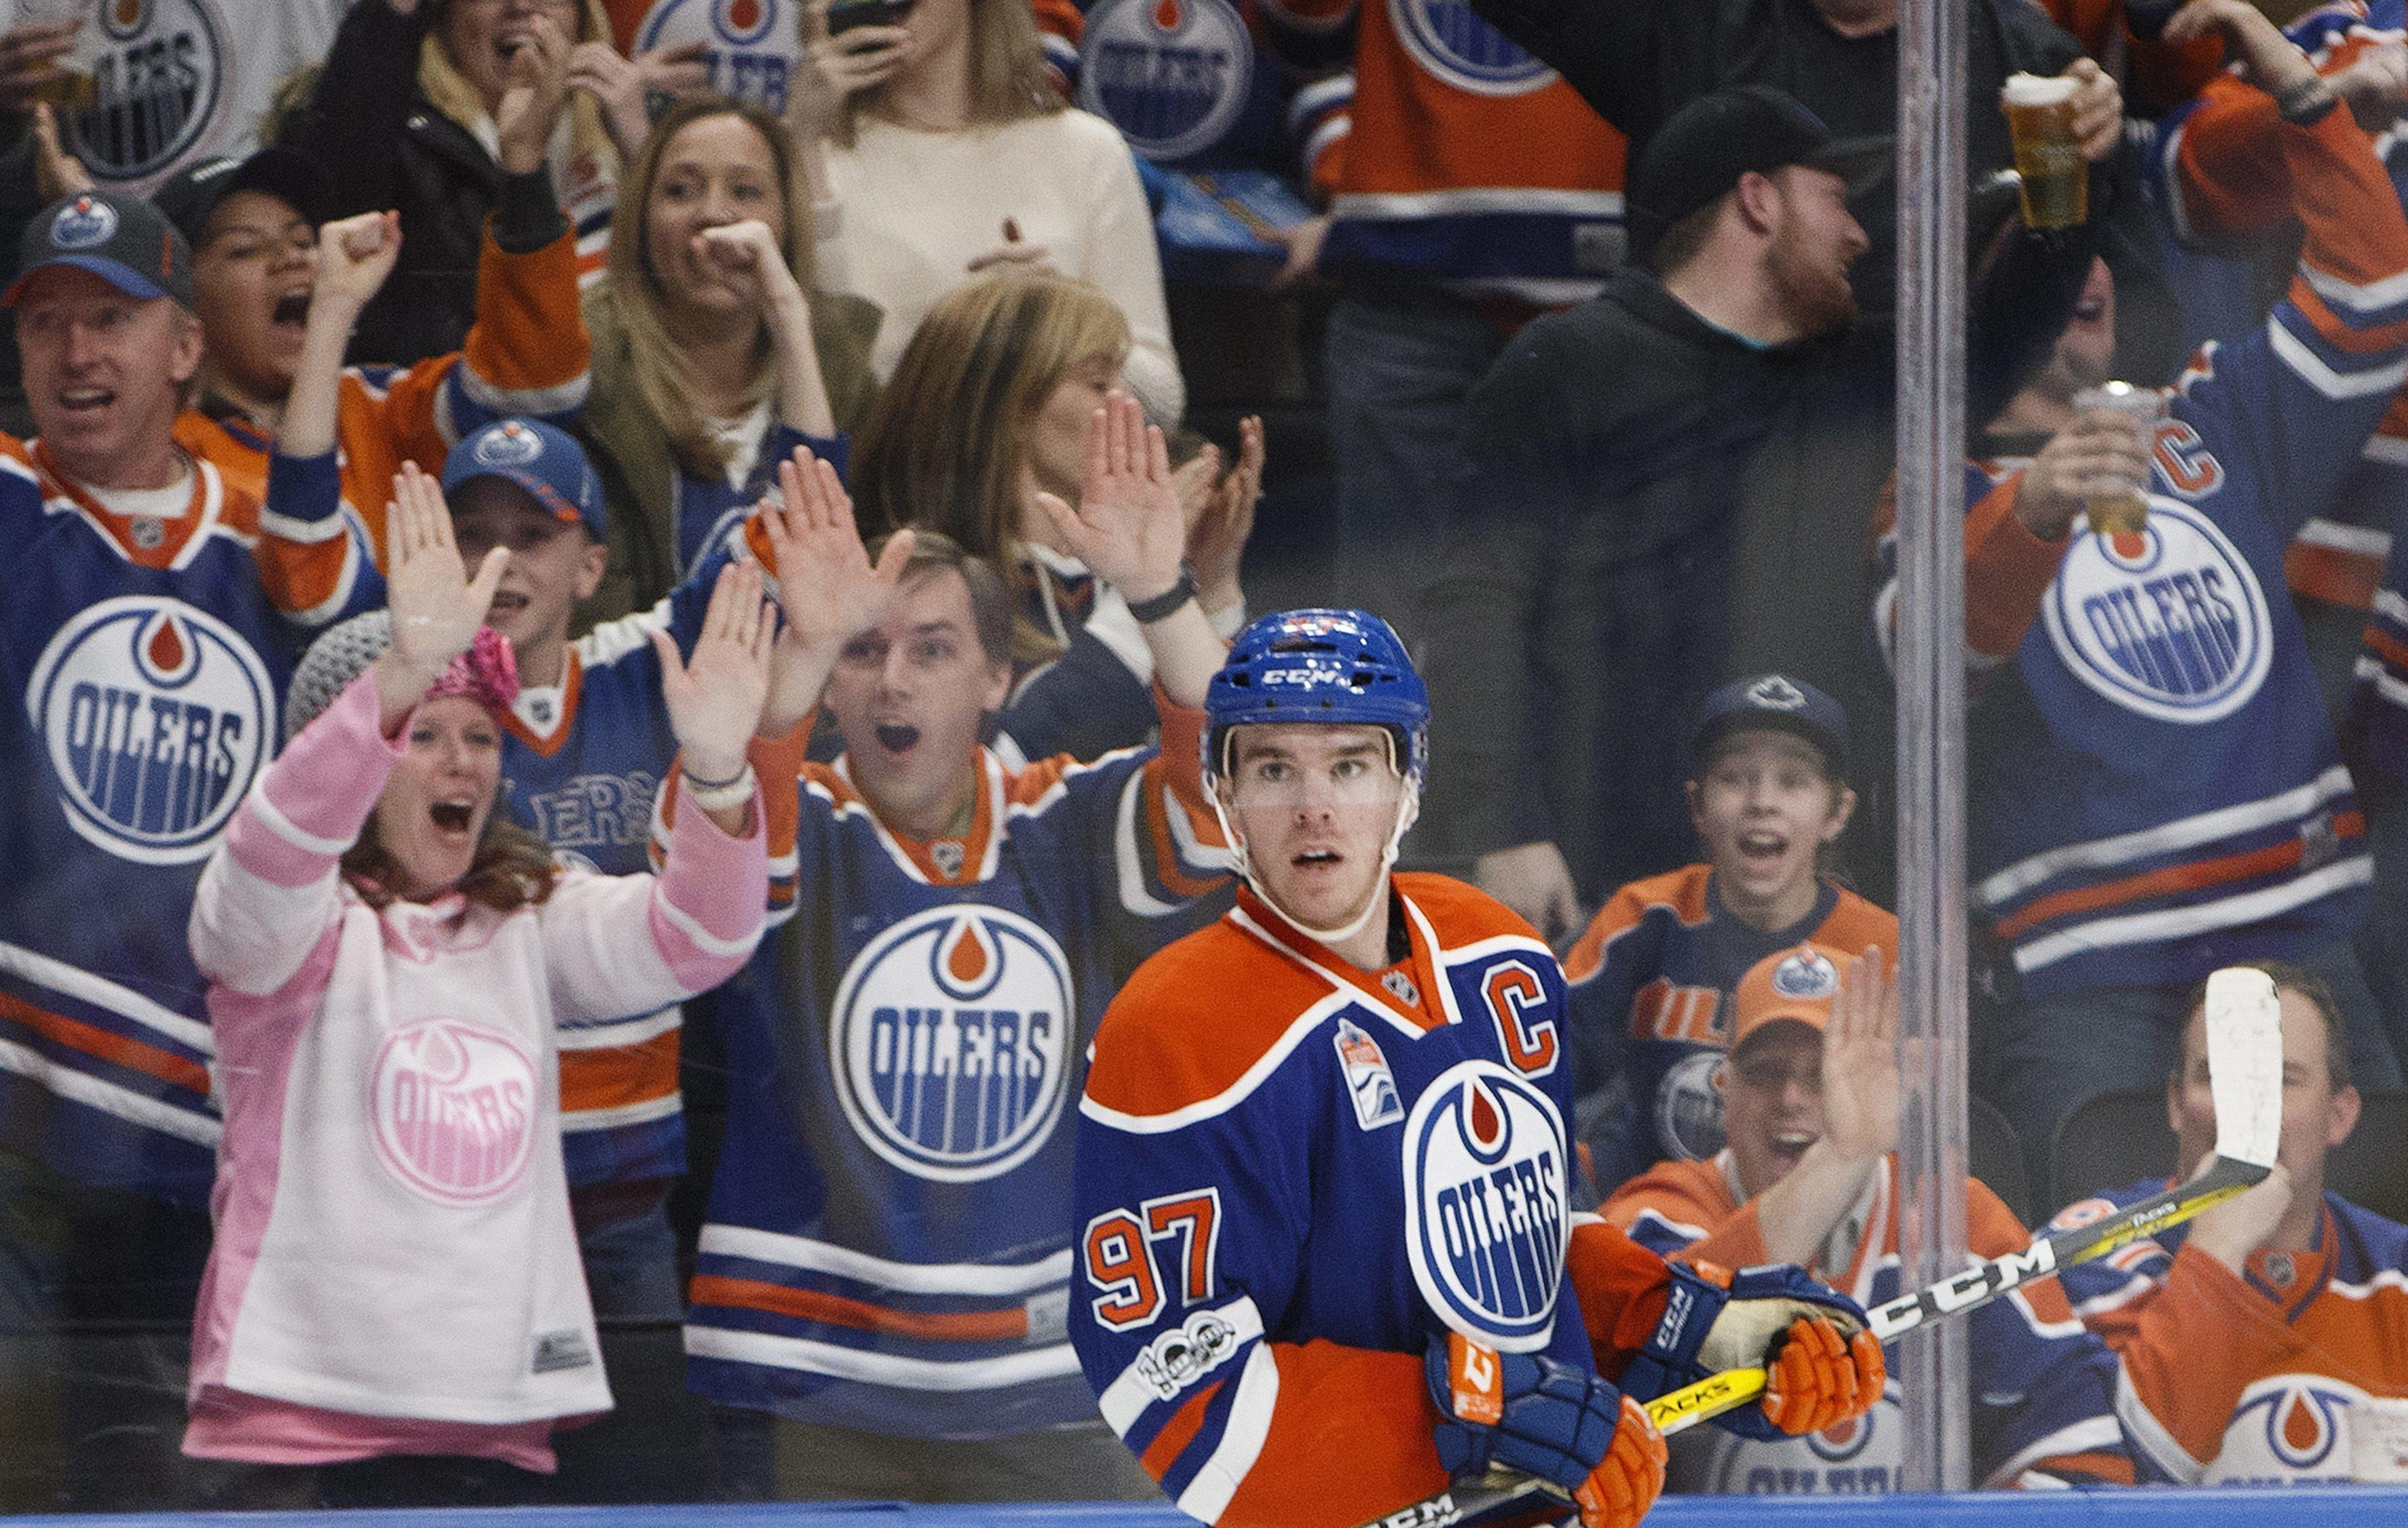 Panthers_oilers_hockey_11679